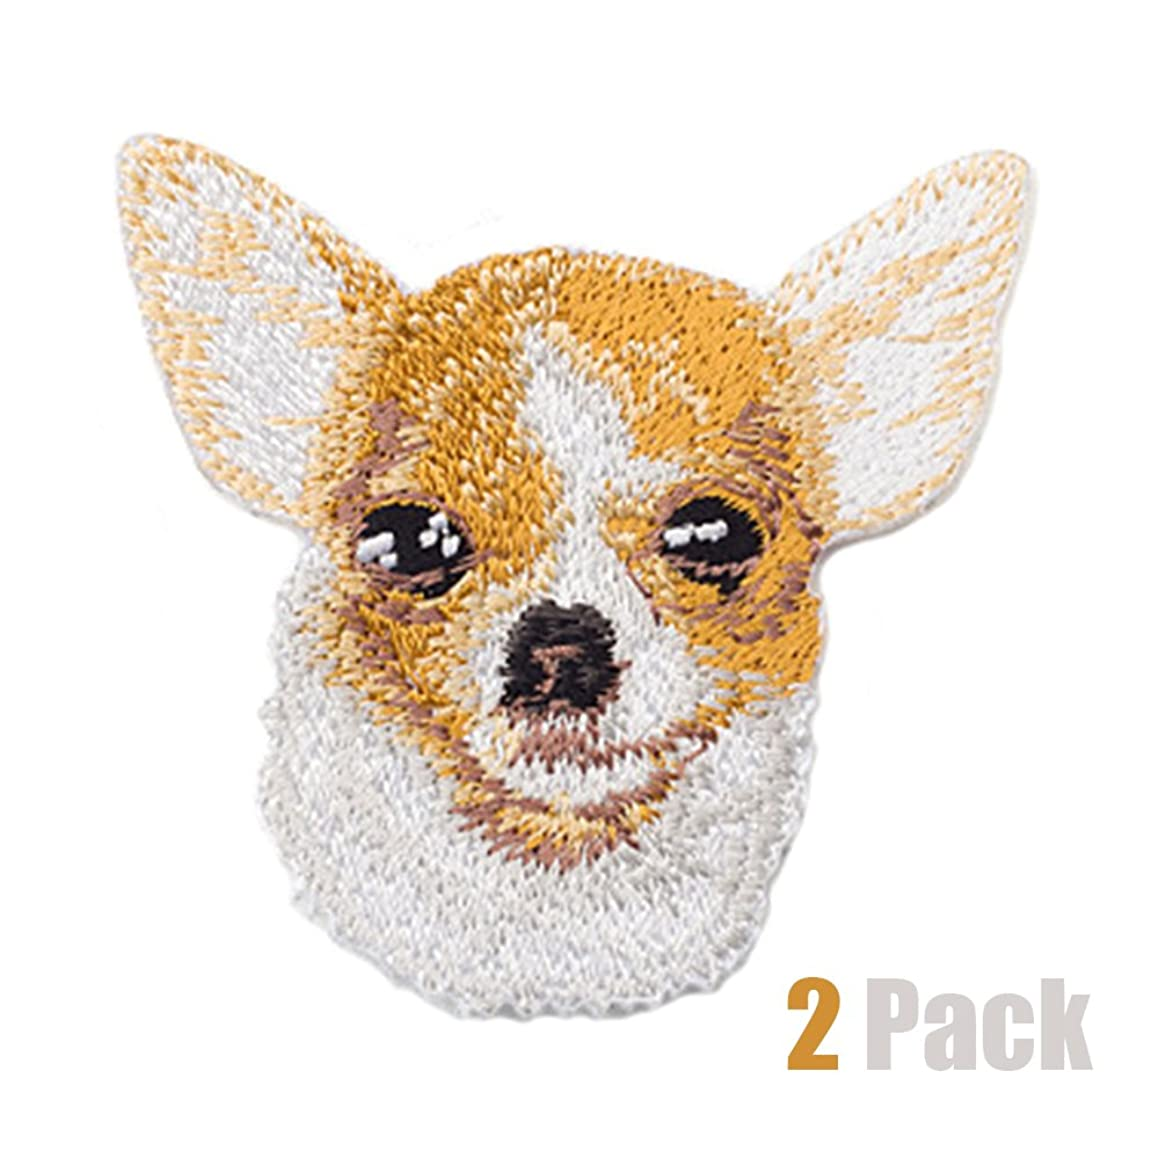 2 Pack Delicate Embroidered Patches,Cute Dogs Embroidery Patches, Iron On Patches, Sew On Applique Patch, Custom Backpack Patches for Men, Women, Boys, Girls, Kids, SUPER COOL! (Chihuahua)